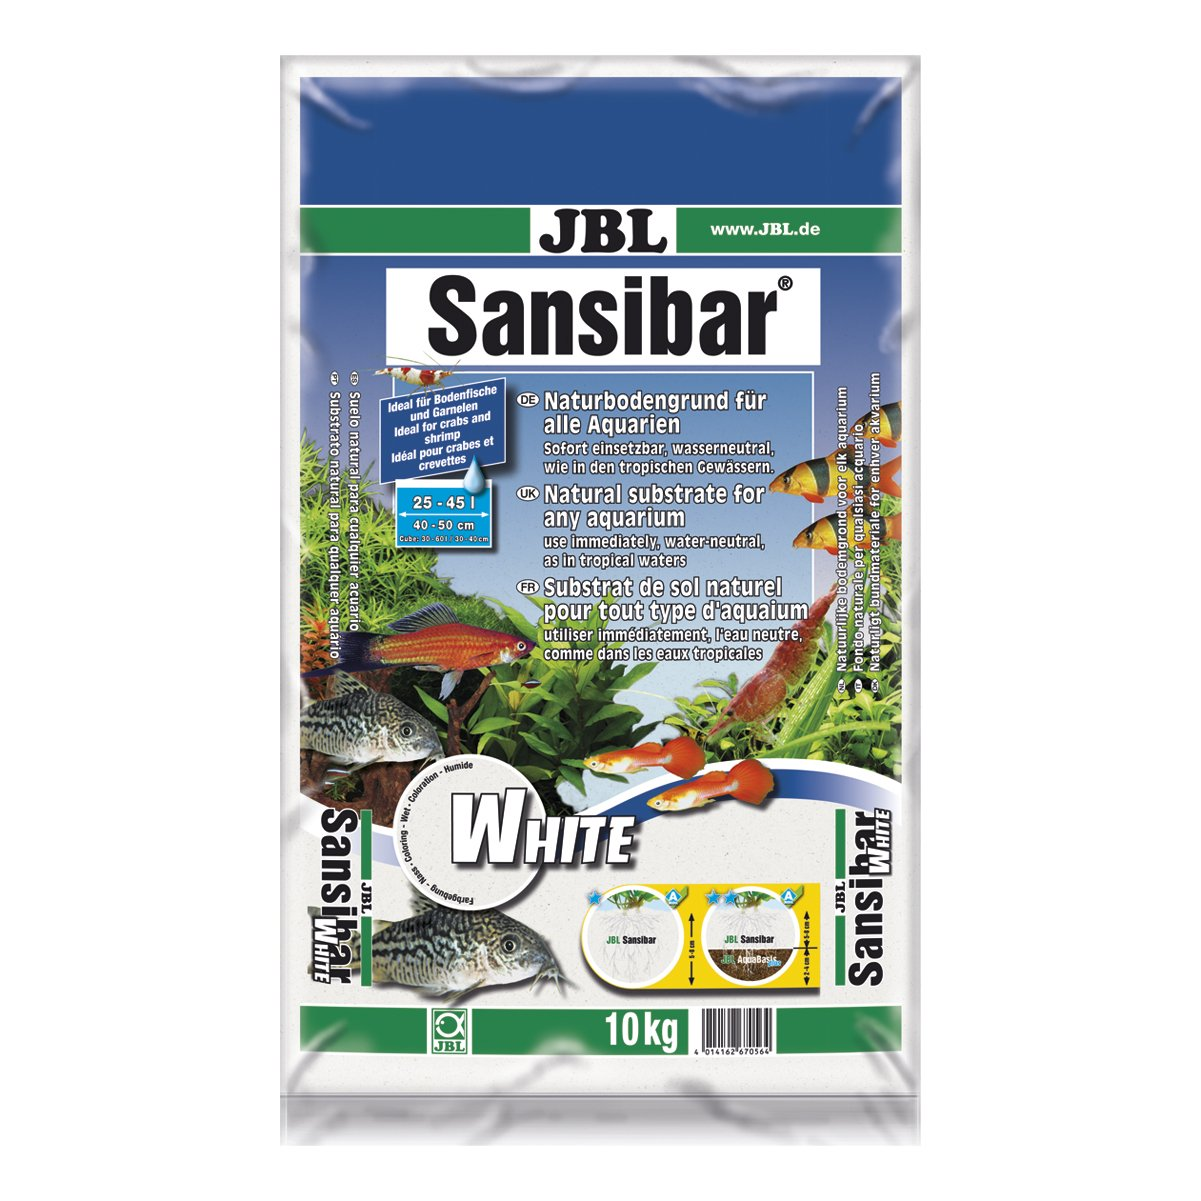 JBL Sansibar Grey 10KG Natural Substrate 6706300